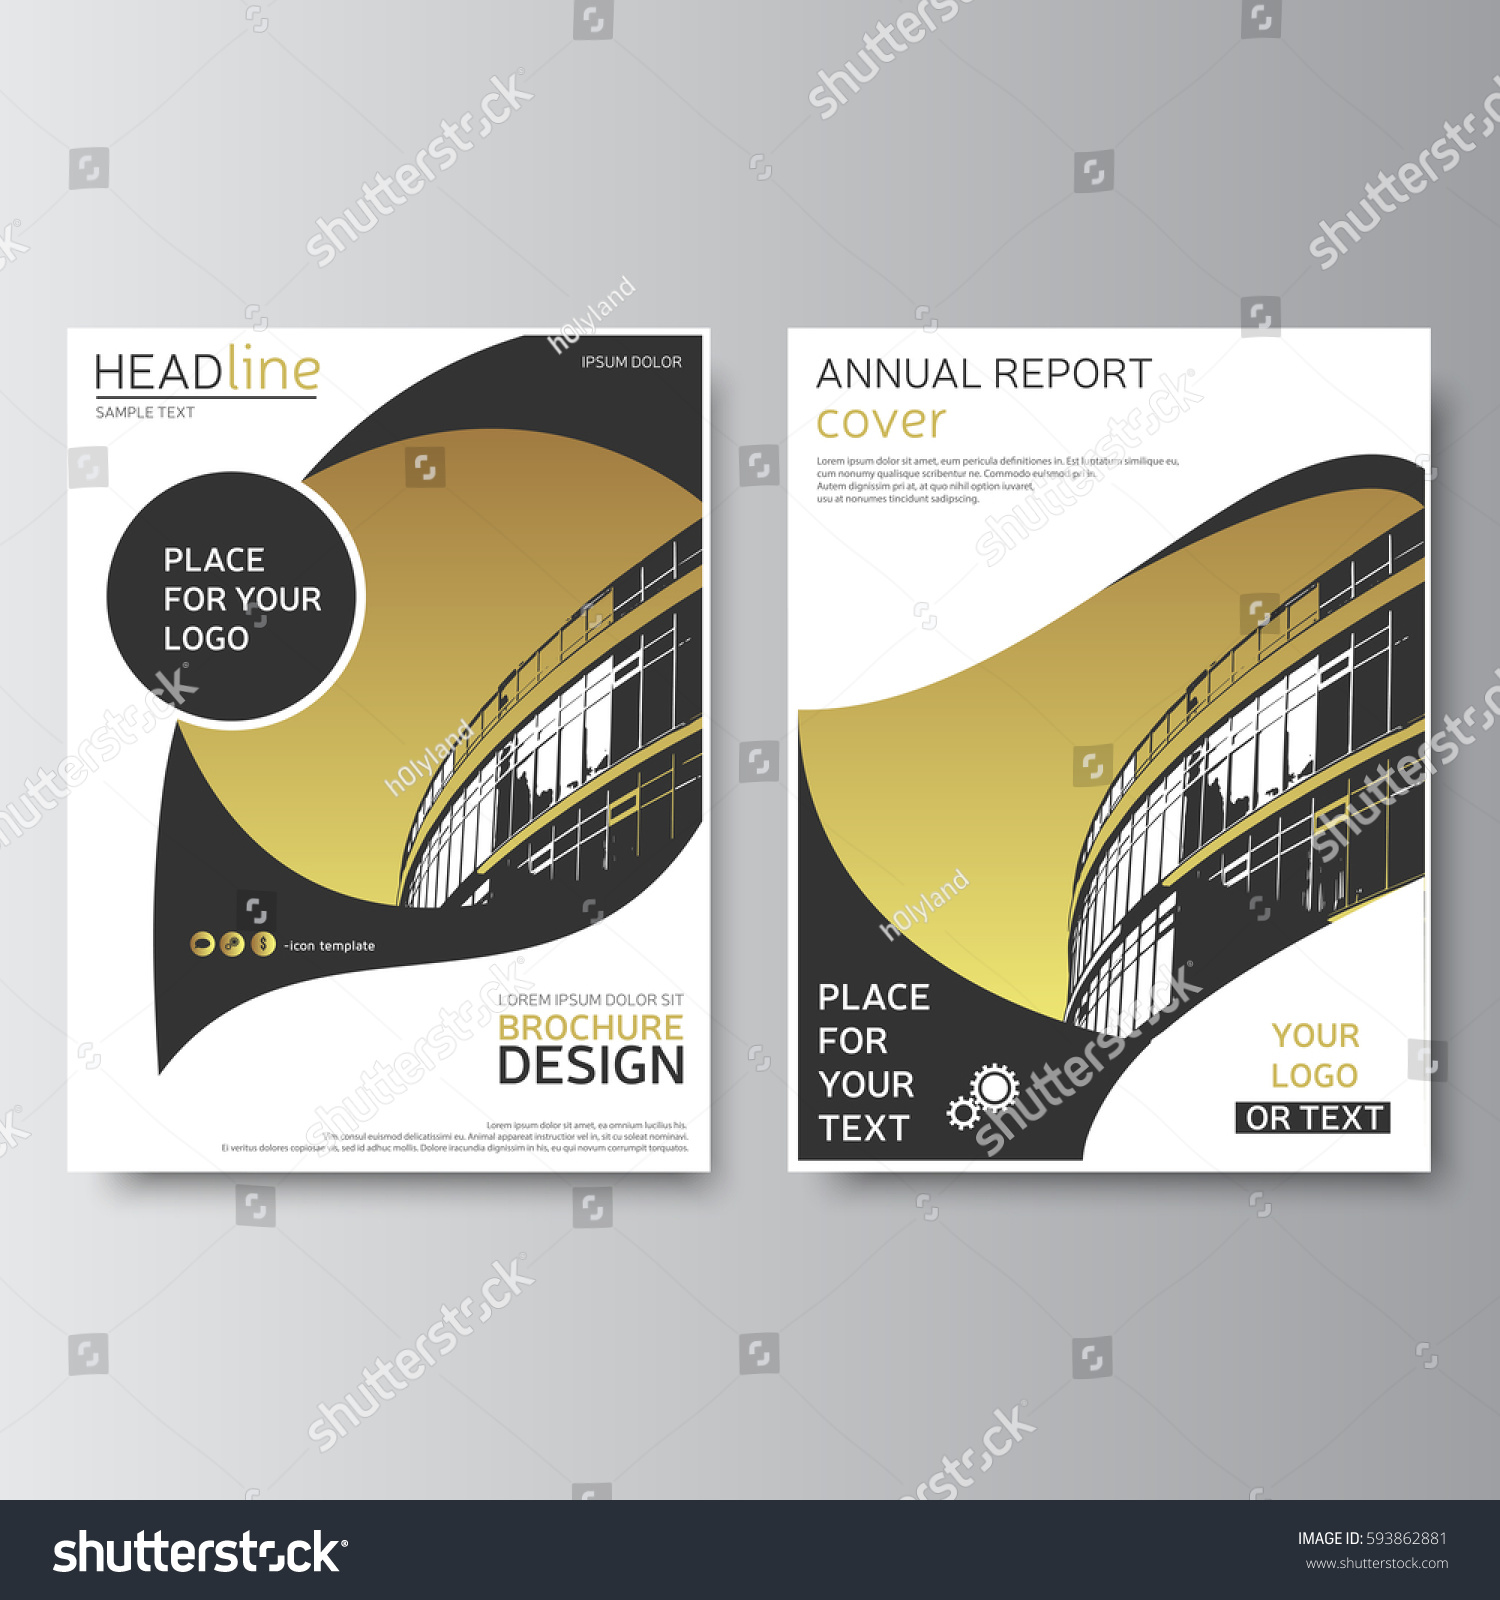 Gold annual report cover modern brochure stock vector royalty free gold annual report cover modern brochure design business flyer corporate identity leaflet template maxwellsz